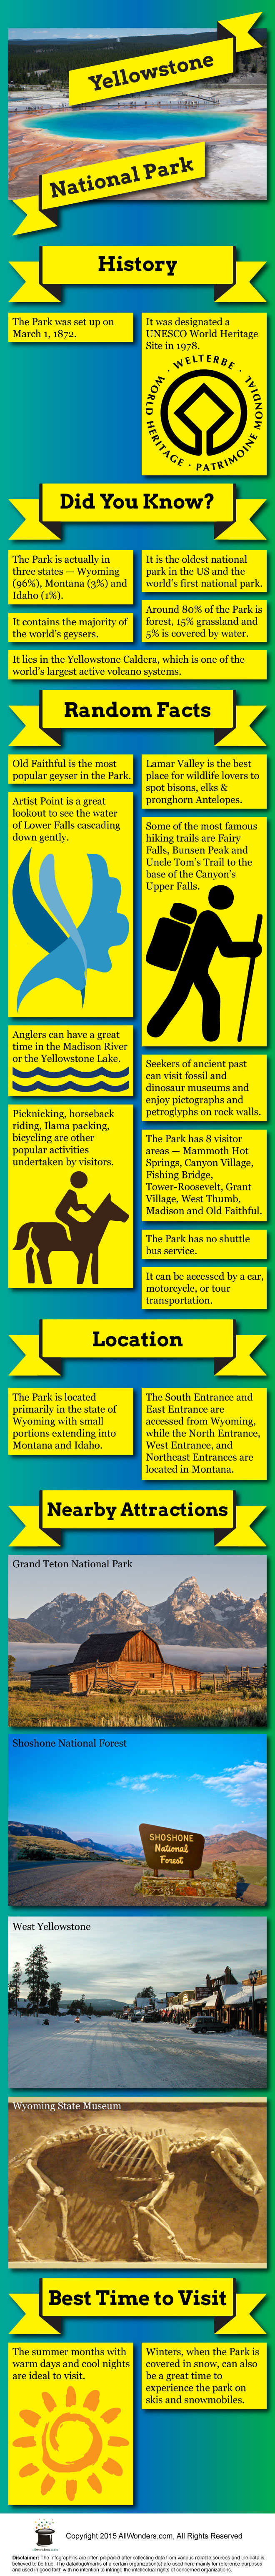 Yellowstone National Park Infographic